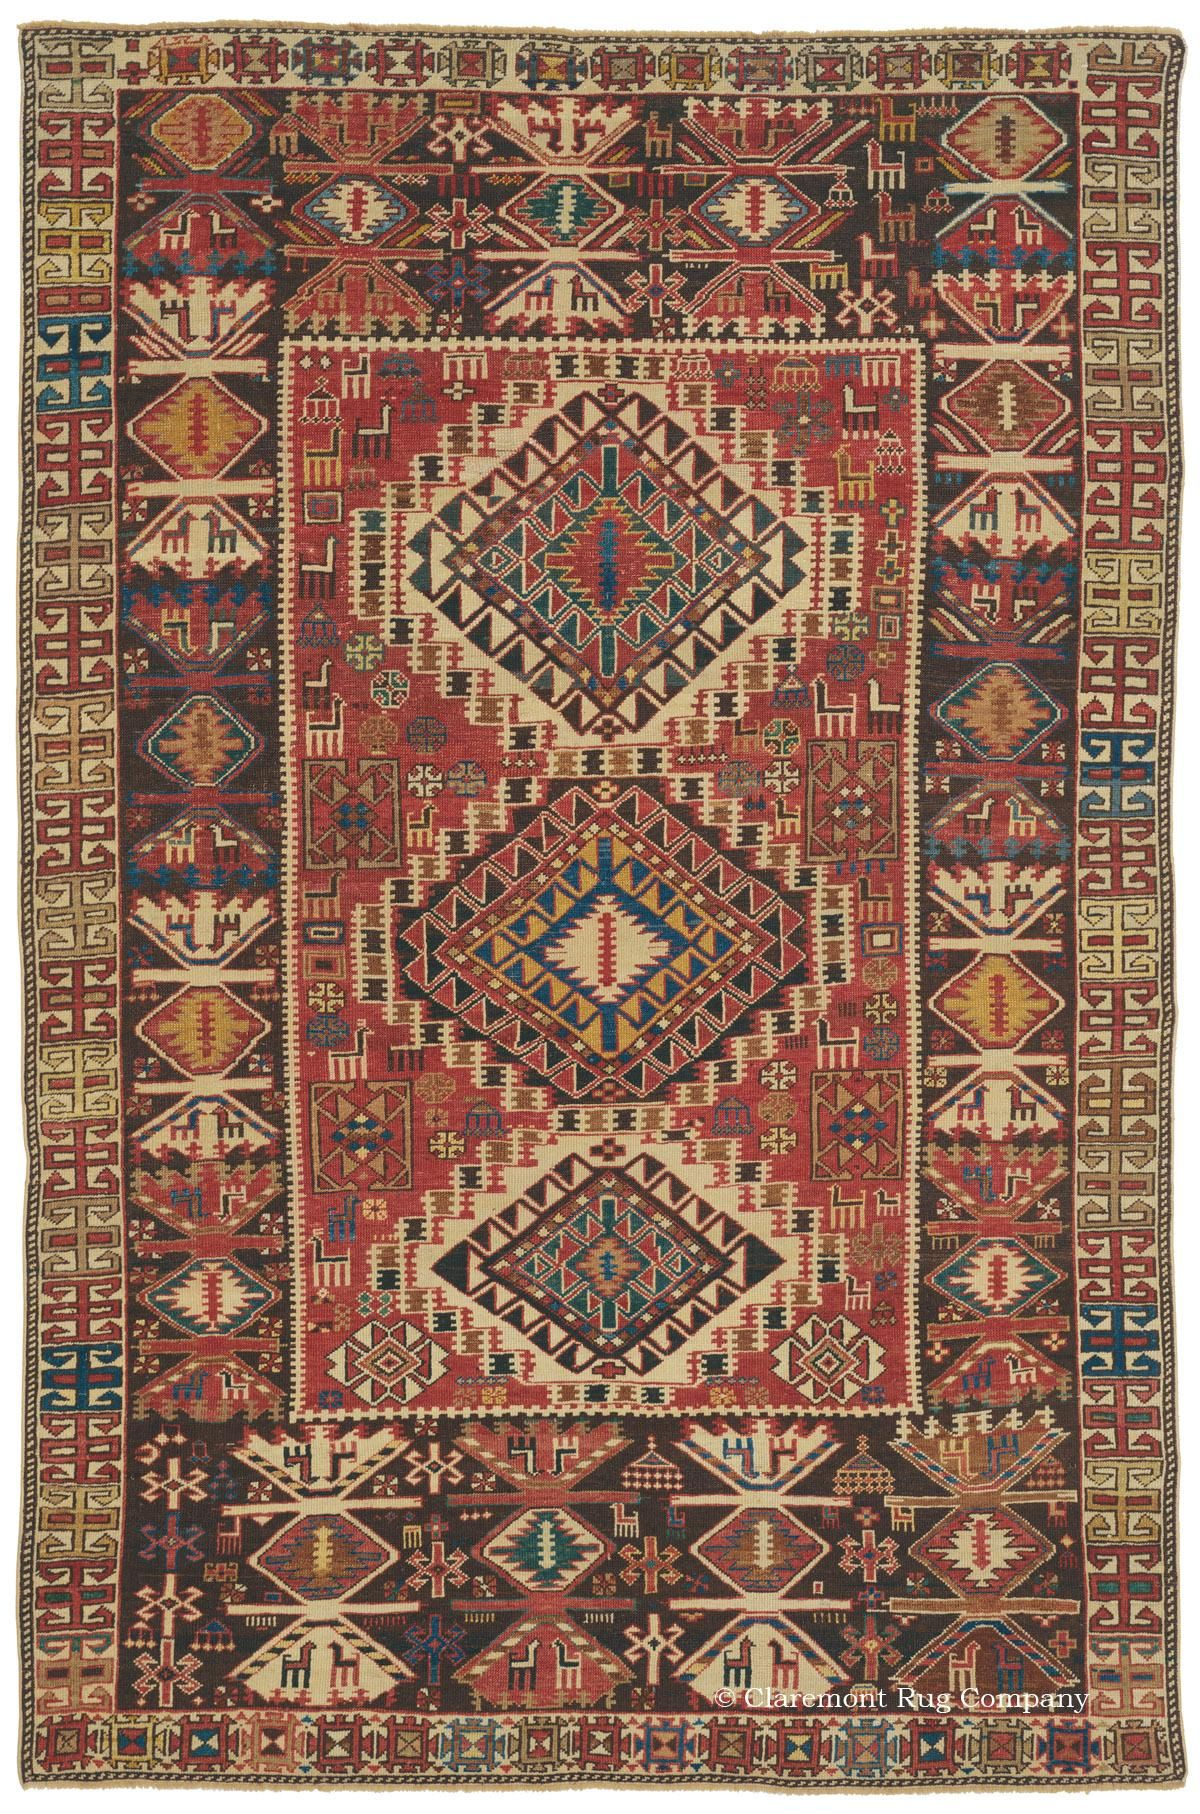 Basic Overview Of Antique Collectible Caucasian Rugs And Carpets Claremont Rug Company Rugs Rugs On Carpet